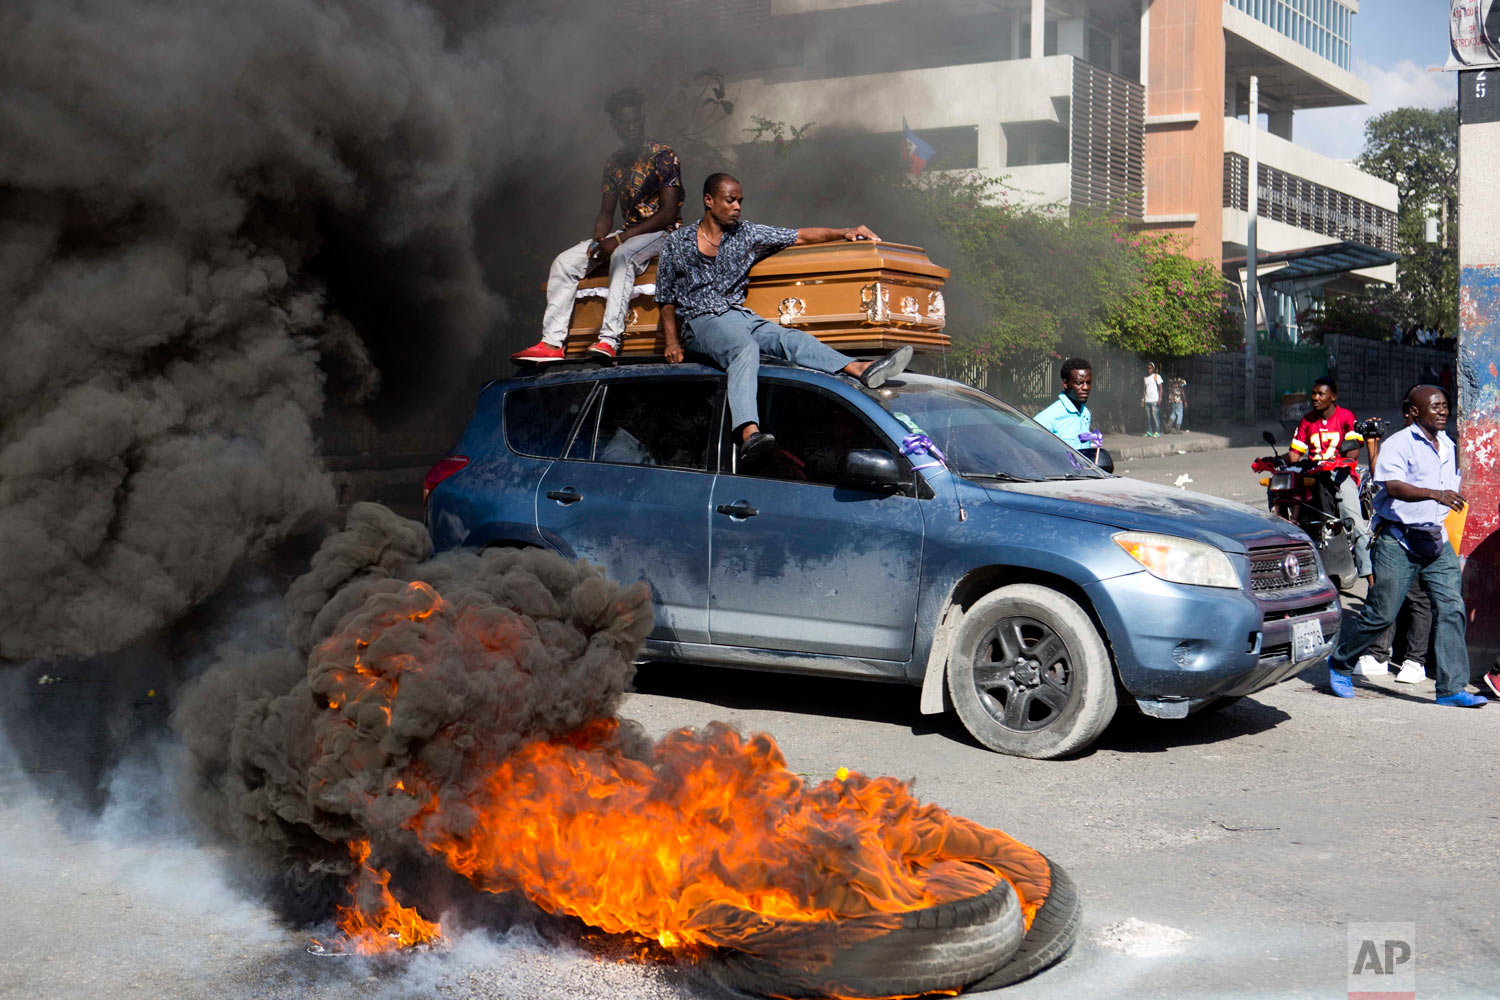 In this March 4, 2019 photo, a car carries a coffin containing the body of one of the demonstrators who was killed during previous protests in Port-au-Prince, Haiti. (AP Photo/Dieu Nalio Chery)